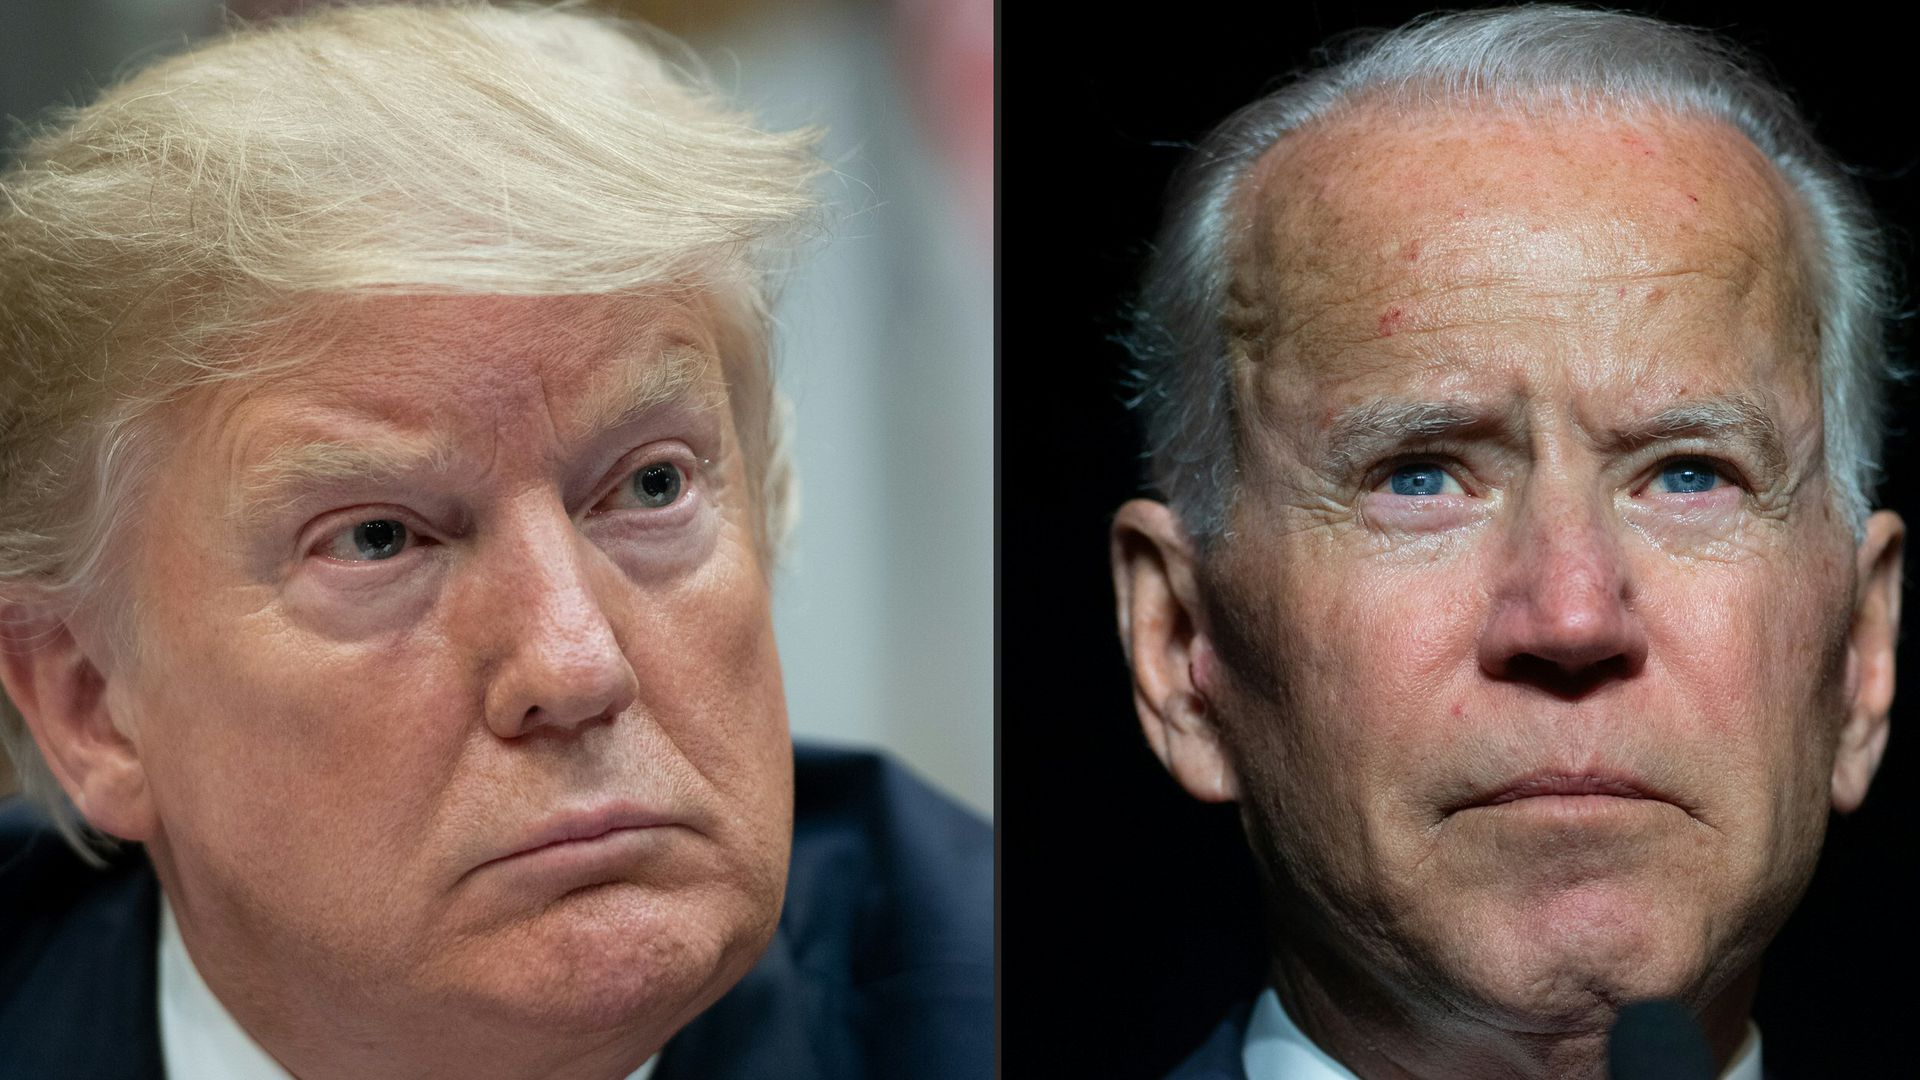 A comination photo of President Trump and former Vice President Joe Biden.